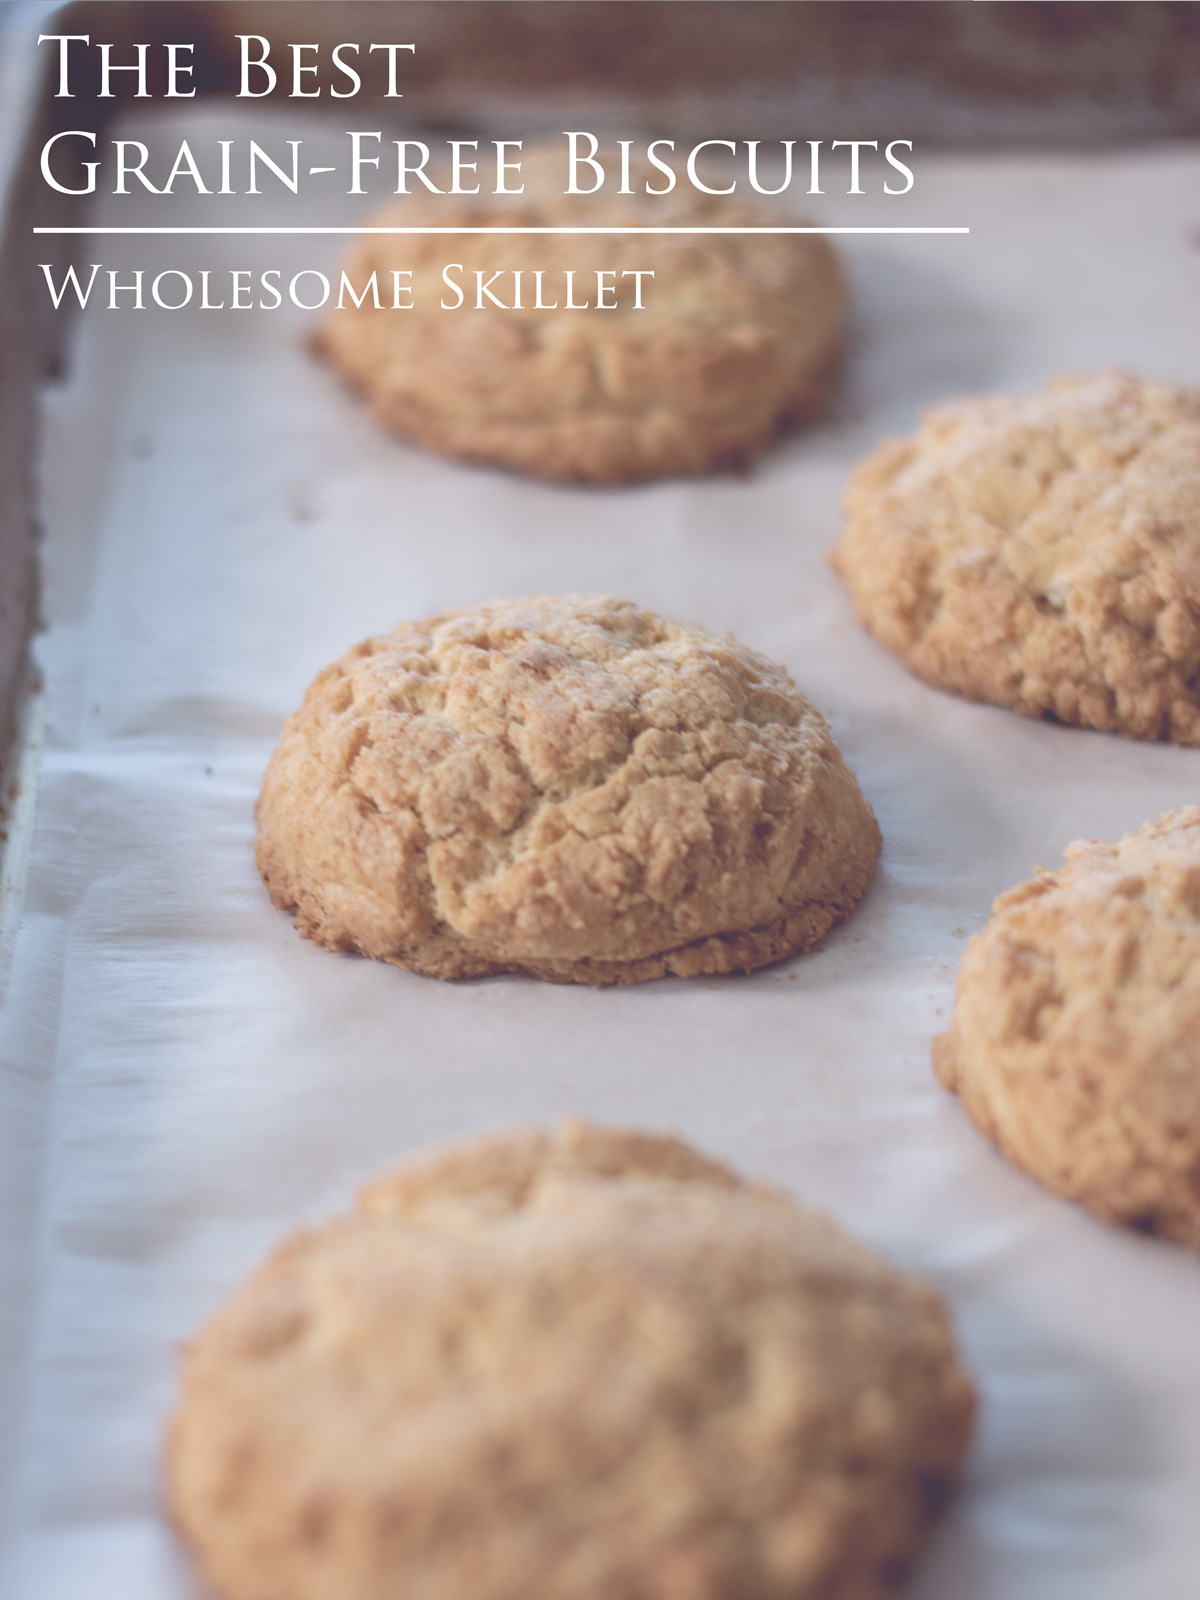 Delicious Grain-Free Biscuits -  An updated twist on a classic, southern staple.  #glutenfree #lowcarb #paleo